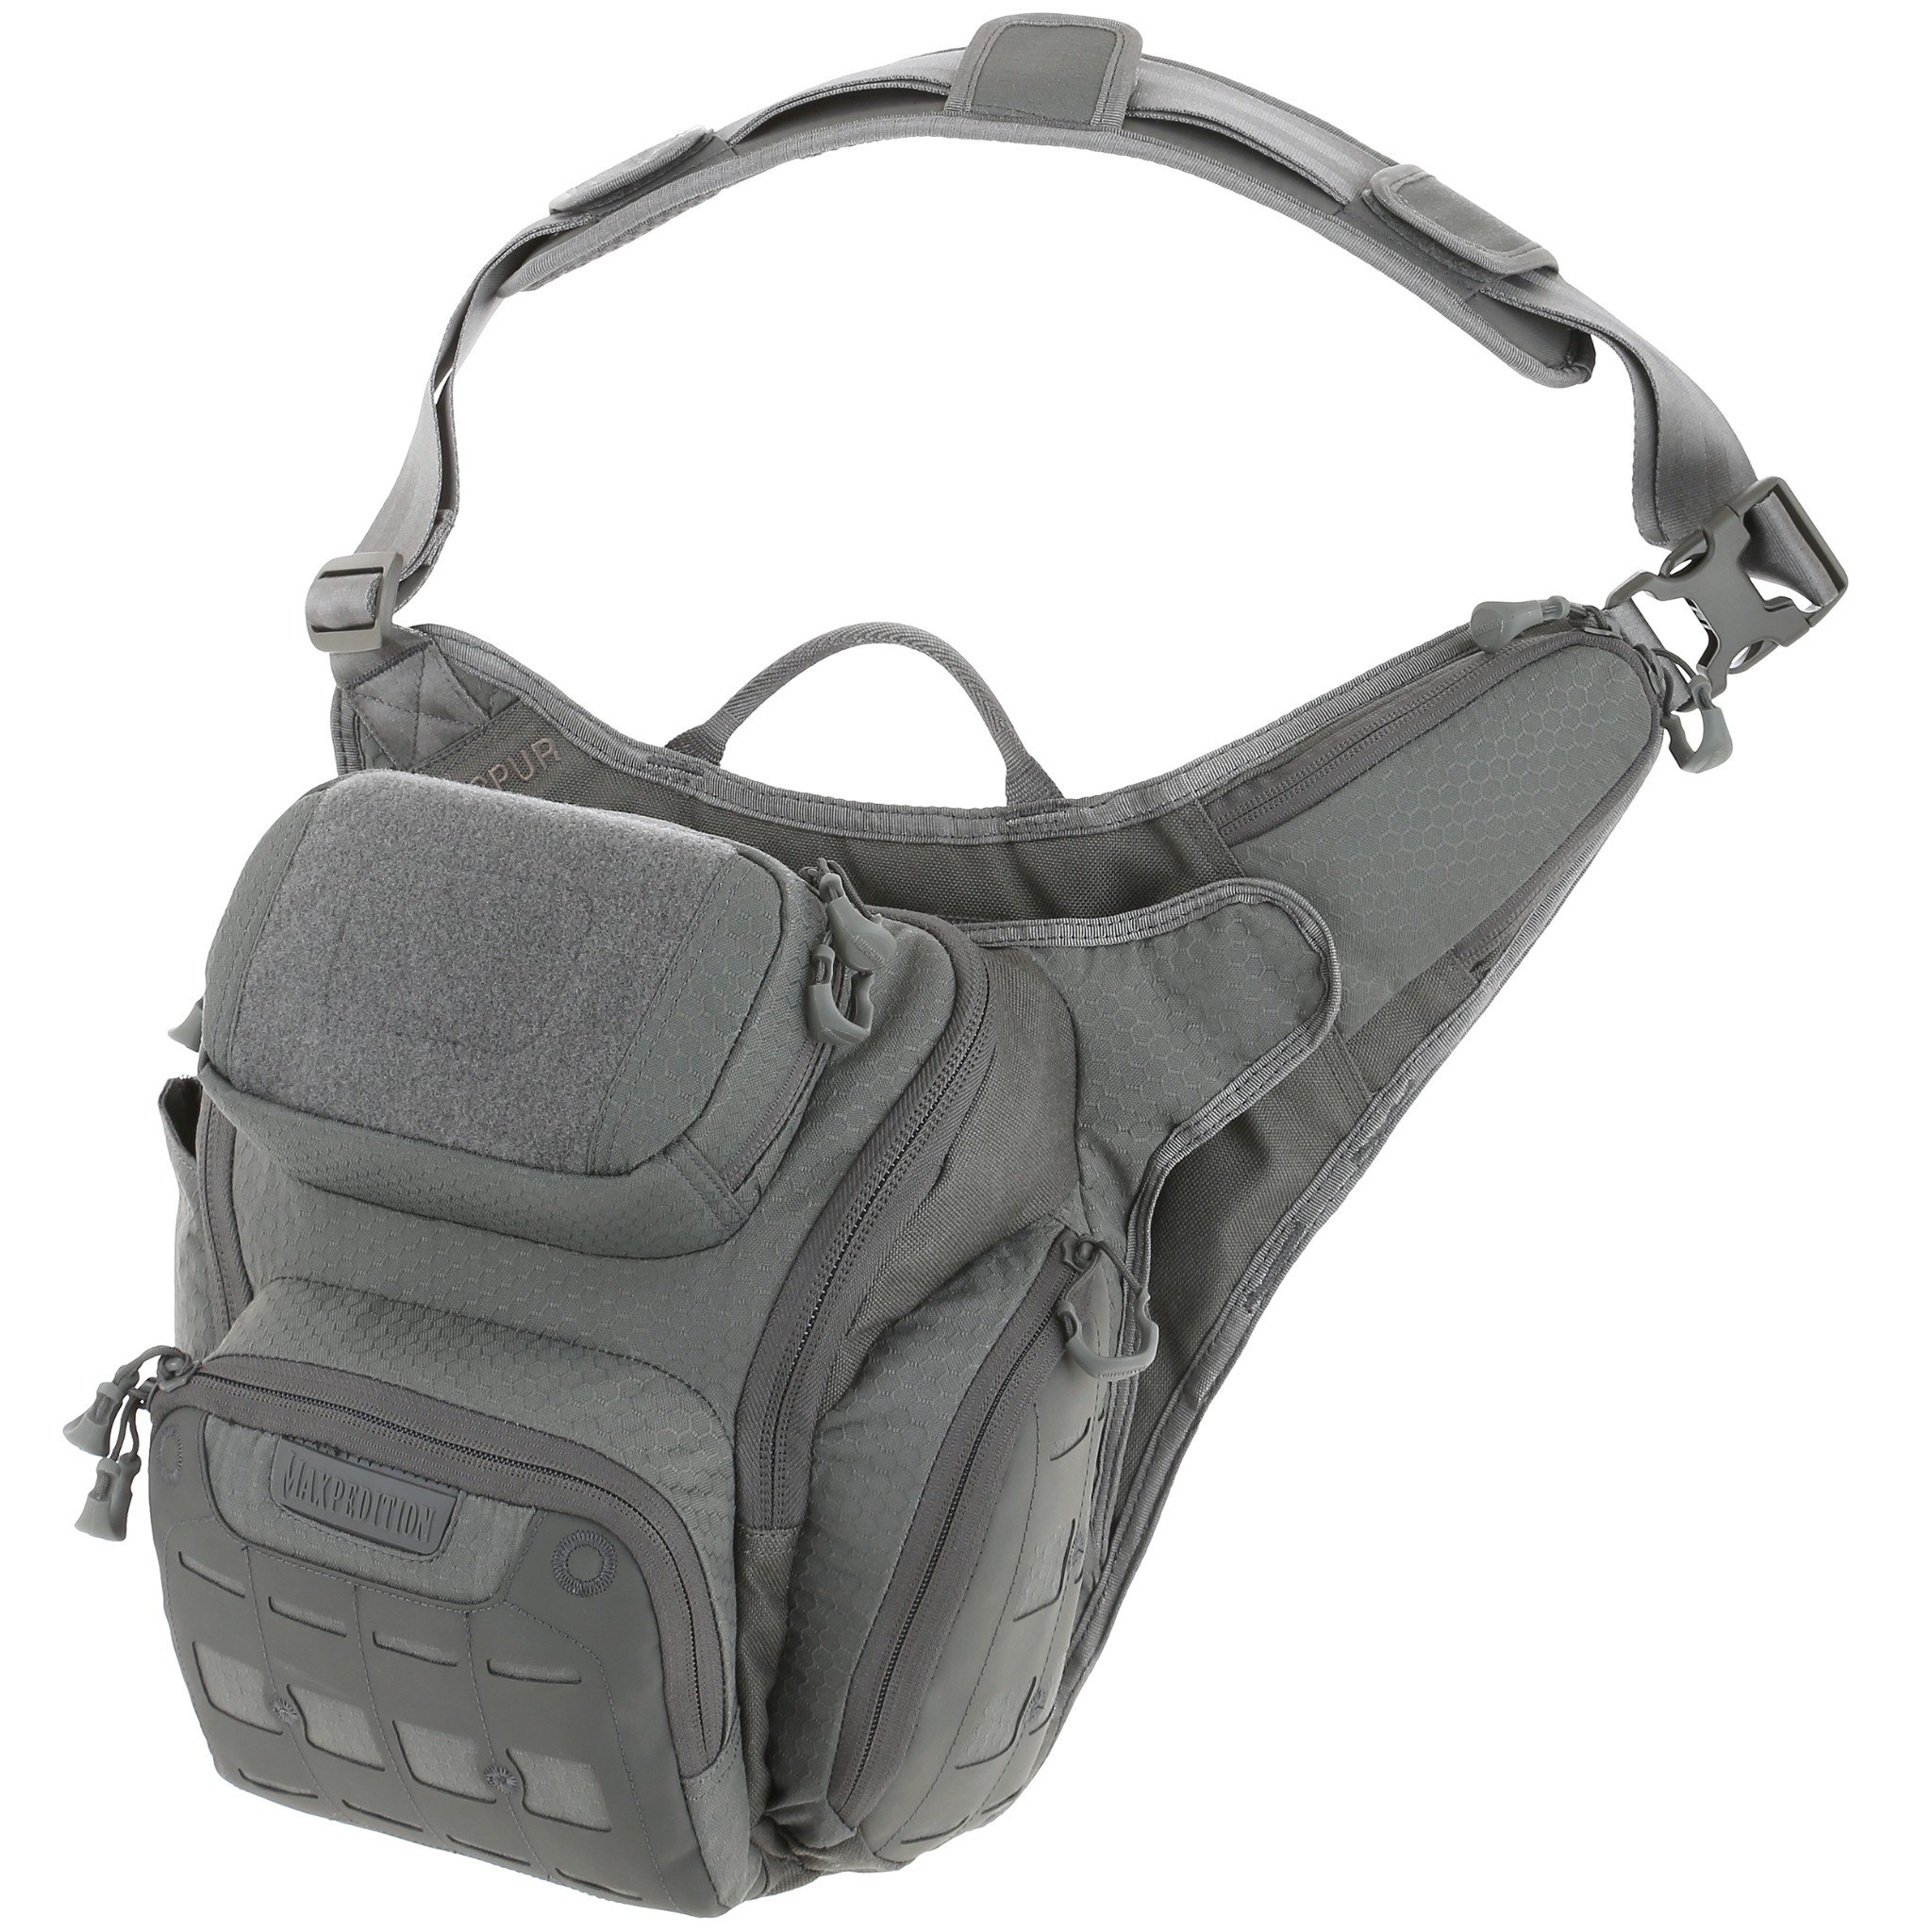 Túi Maxpedition WOLFSPUR v2.0 Crossbody - Gray